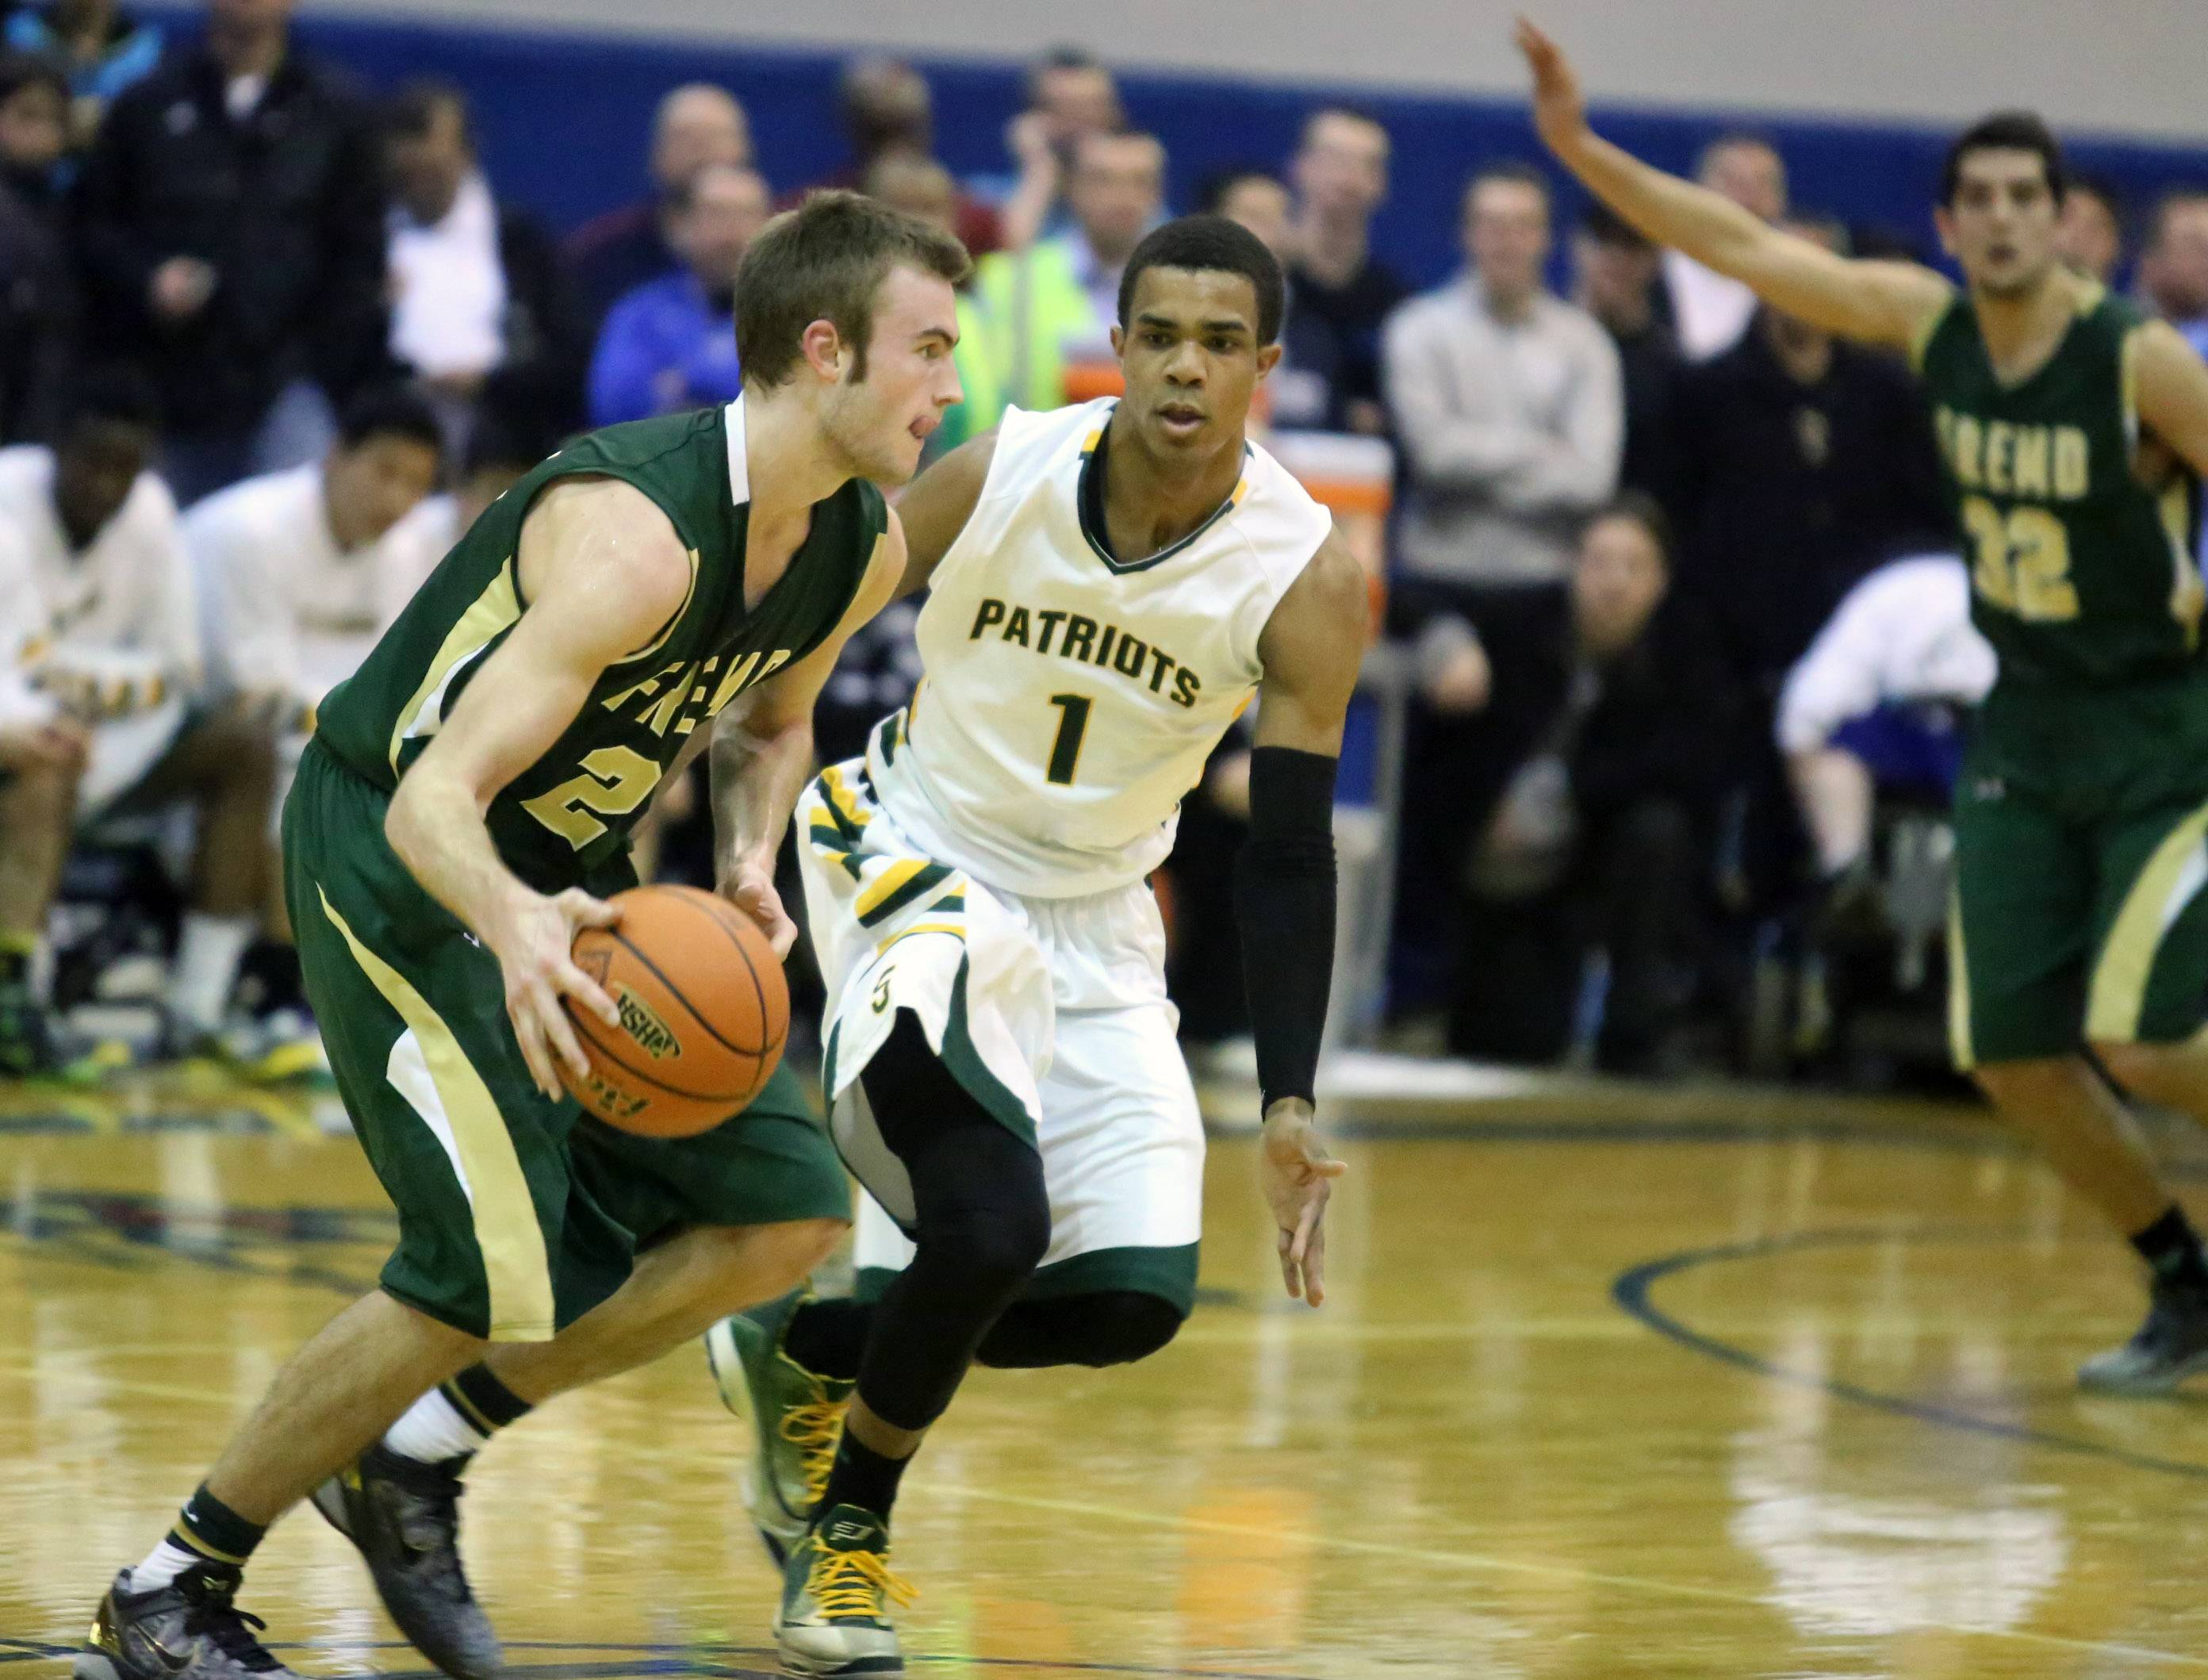 Fremd guard Riley Glassmann bringsthe ball upcourt against Stevenson defender Connor Cashaw during the Patriots' vctory in the Lake Zurich sectional final